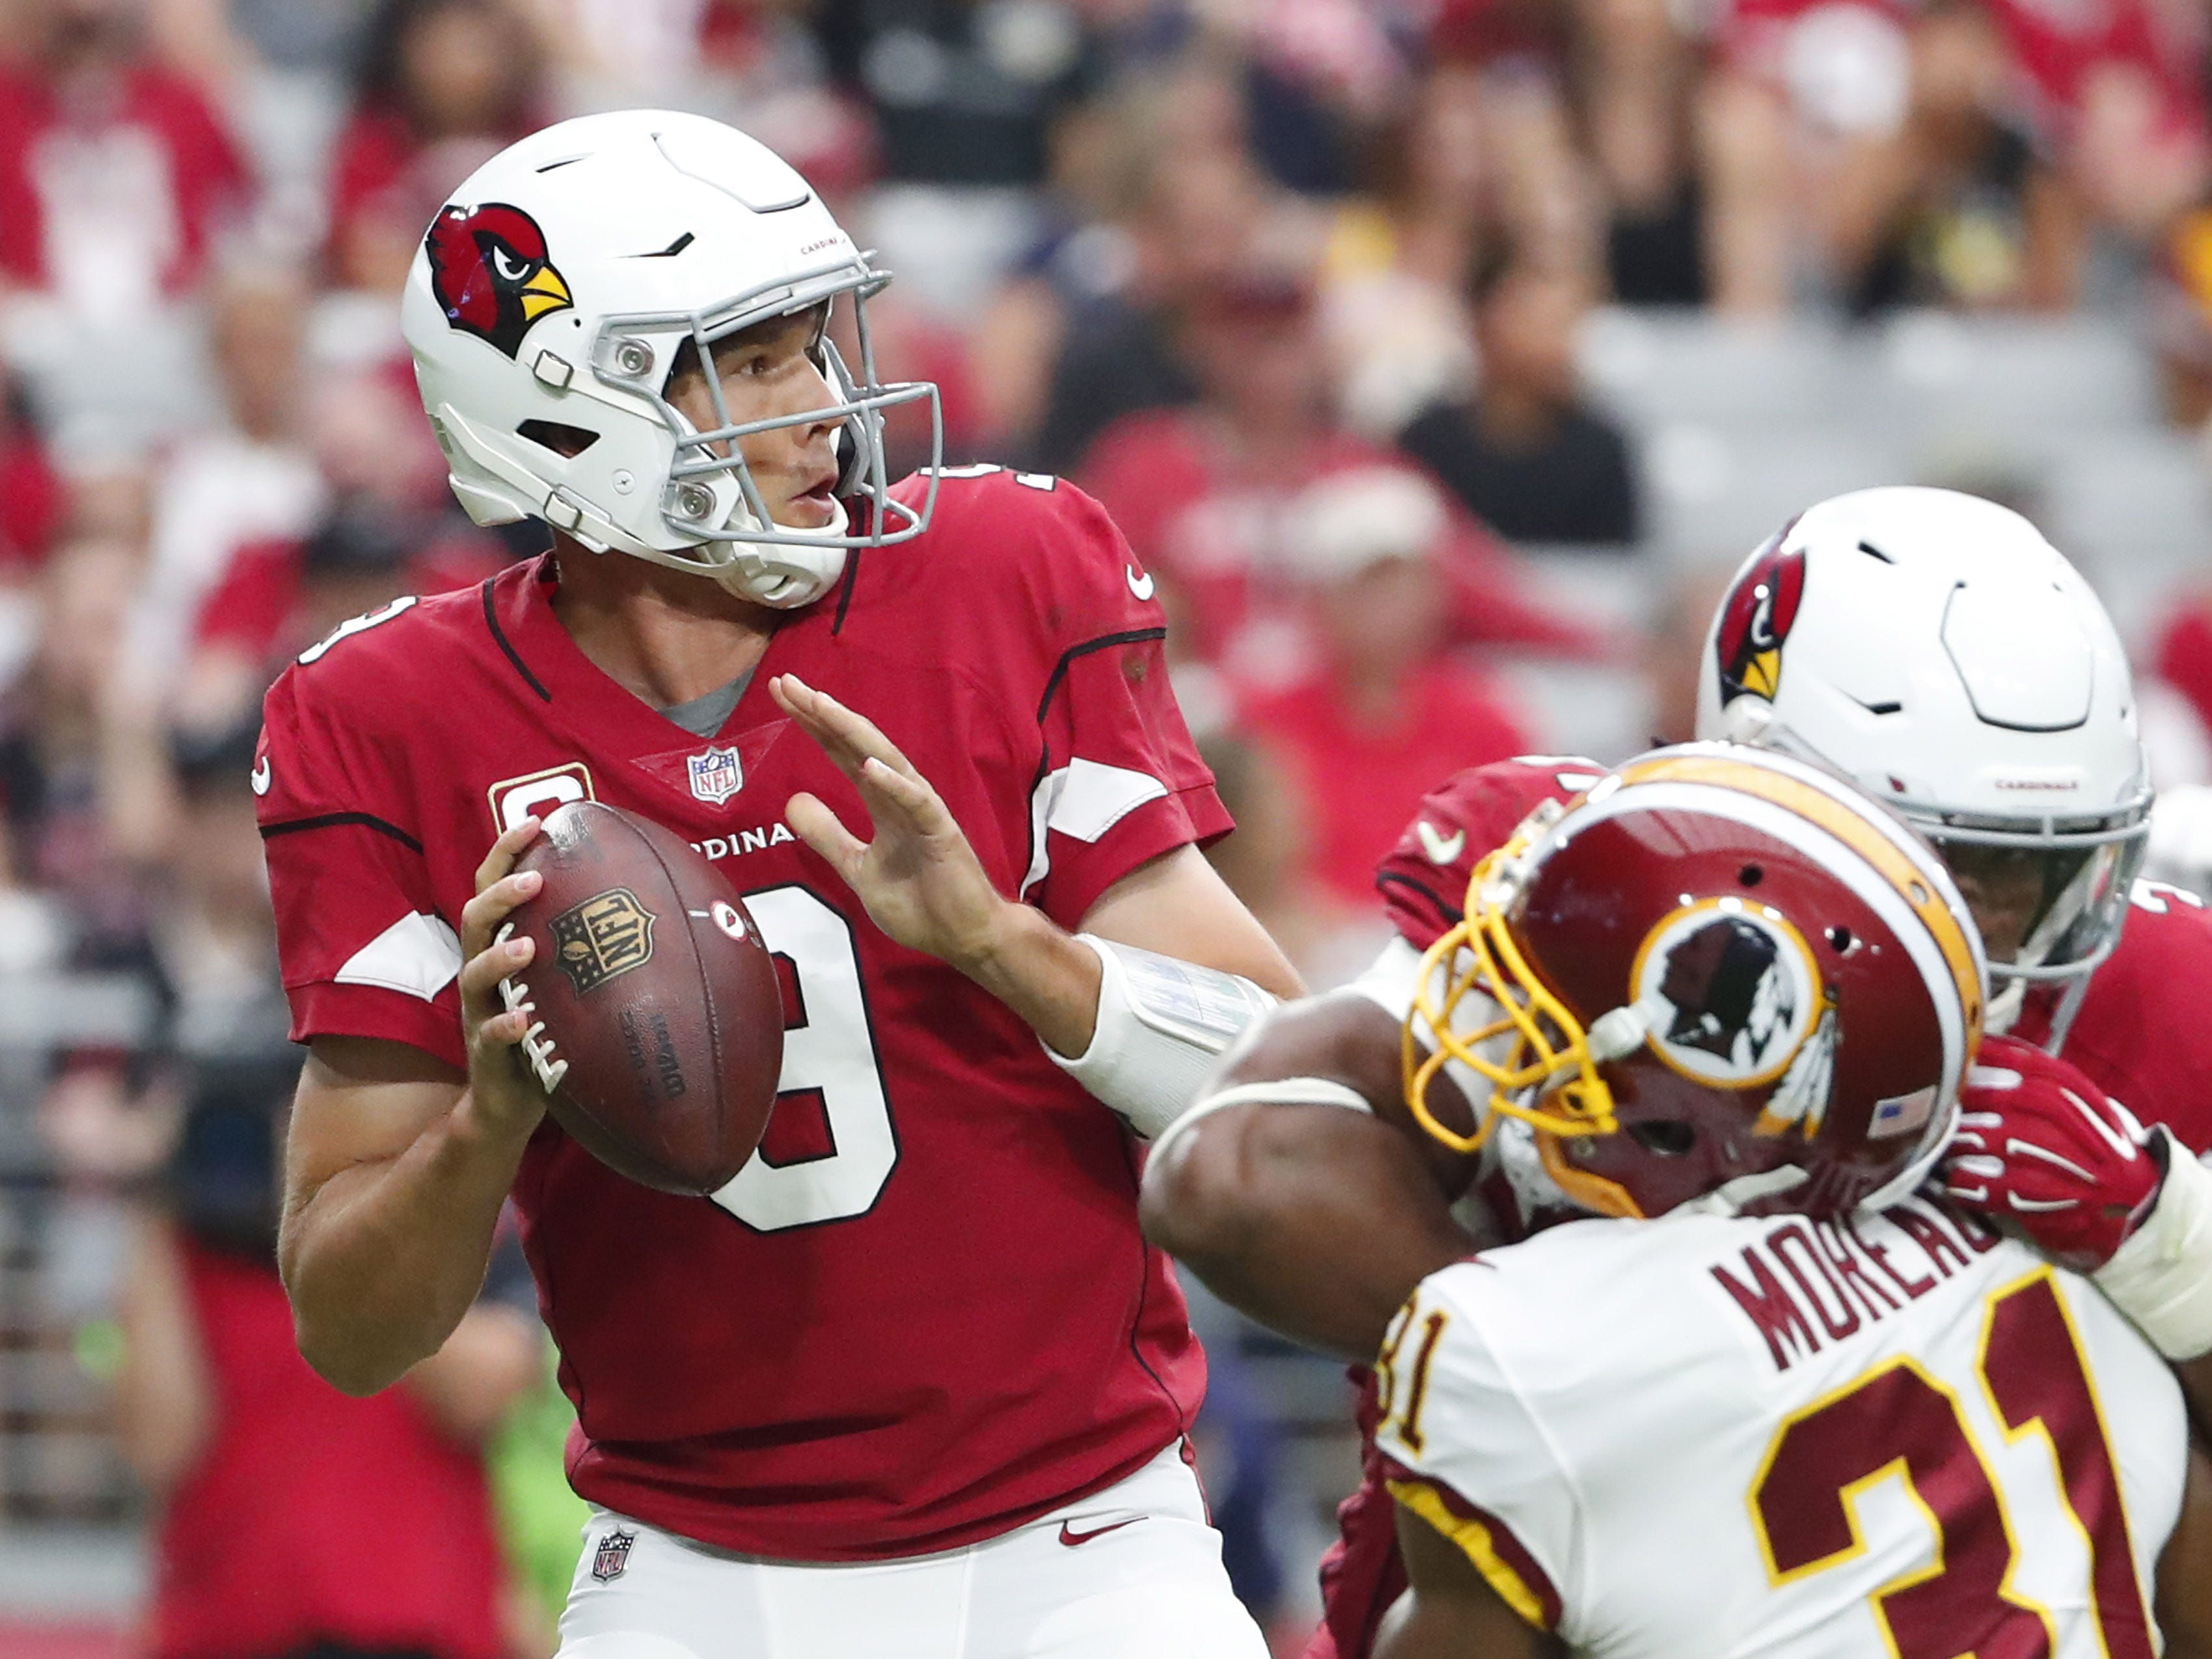 Arizona Cardinals quarterback Sam Bradford (9) throws against the Washington Redskins during the third quarter at State Farm Stadium in Glendale, Ariz. September 9. 2018.